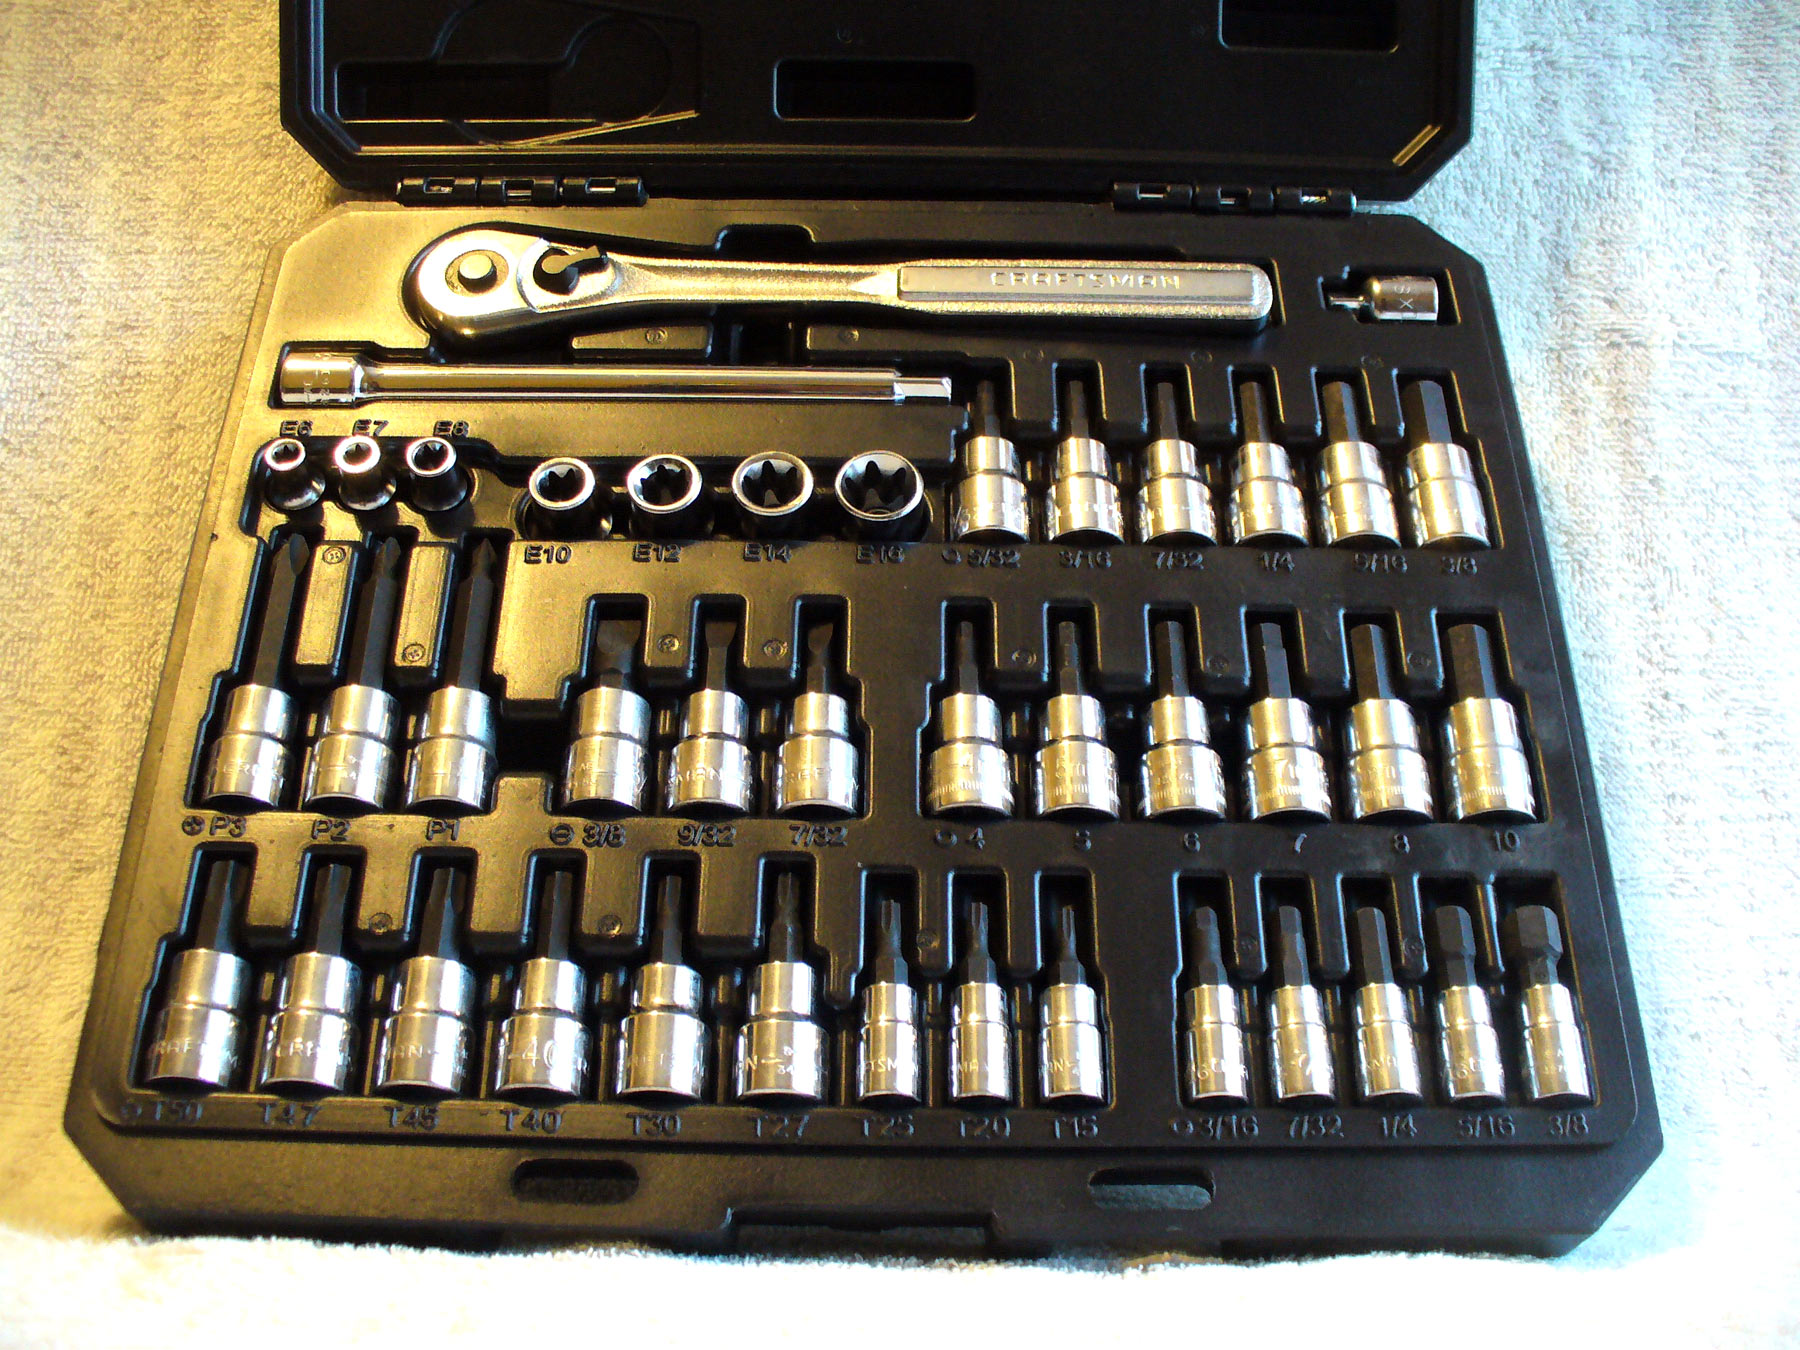 14c3f73c7b7 Torx Bit Socket Wrench Set 11-1 4